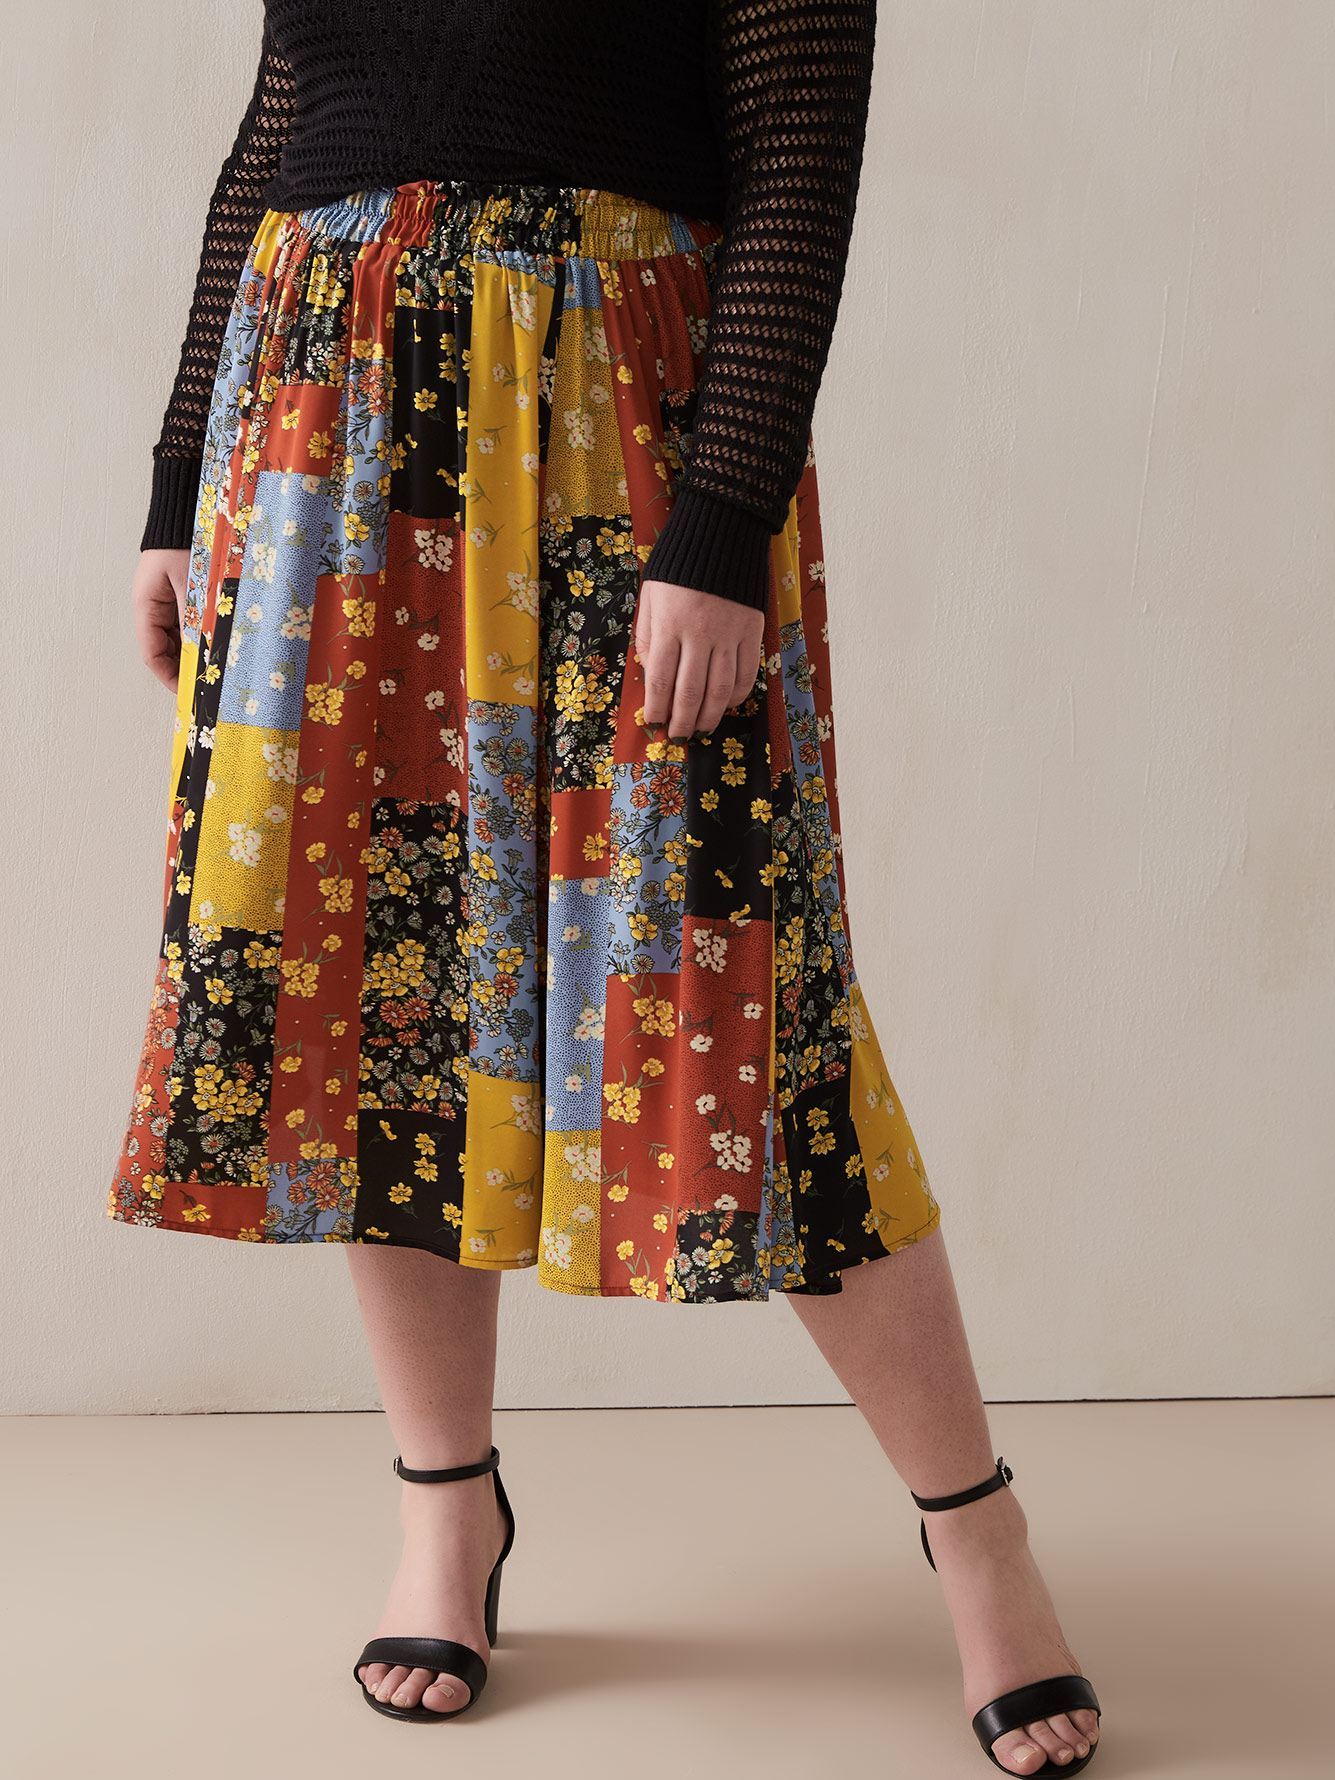 Pull On Flare Skirt by Addition Elle